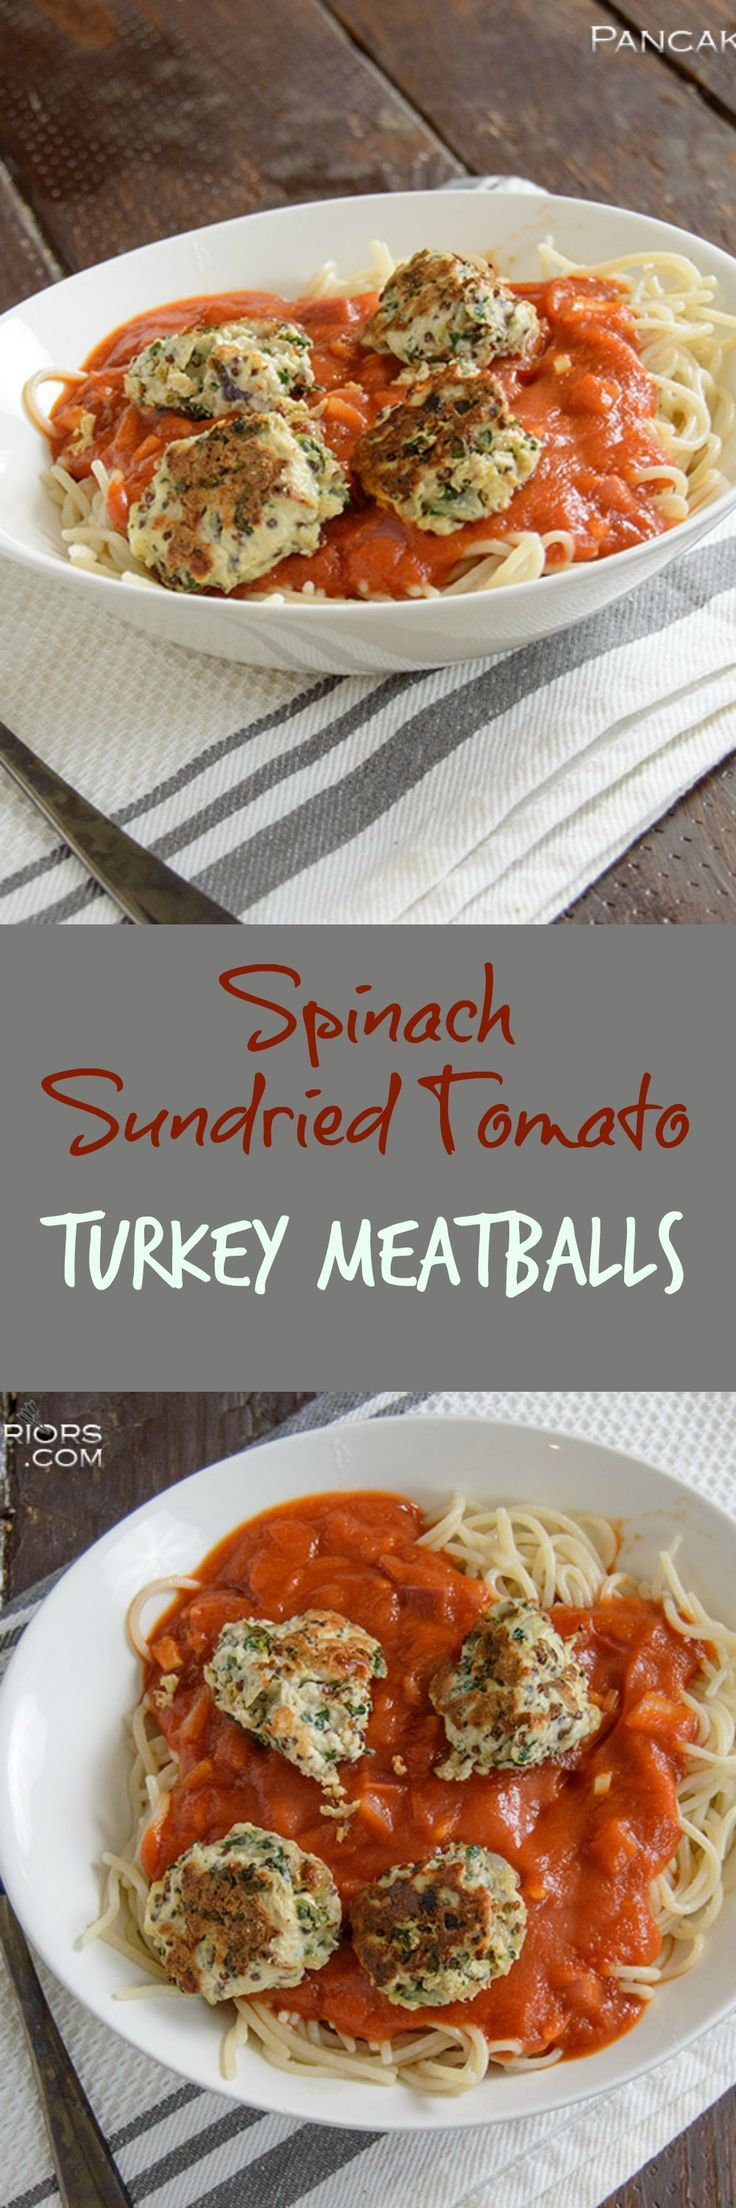 Homemade turkey meatballs! These sundried tomato spinach turkey meatballs are perfect for dinner! Low fat, easy to make, high protein, paleo, whole30 approved!